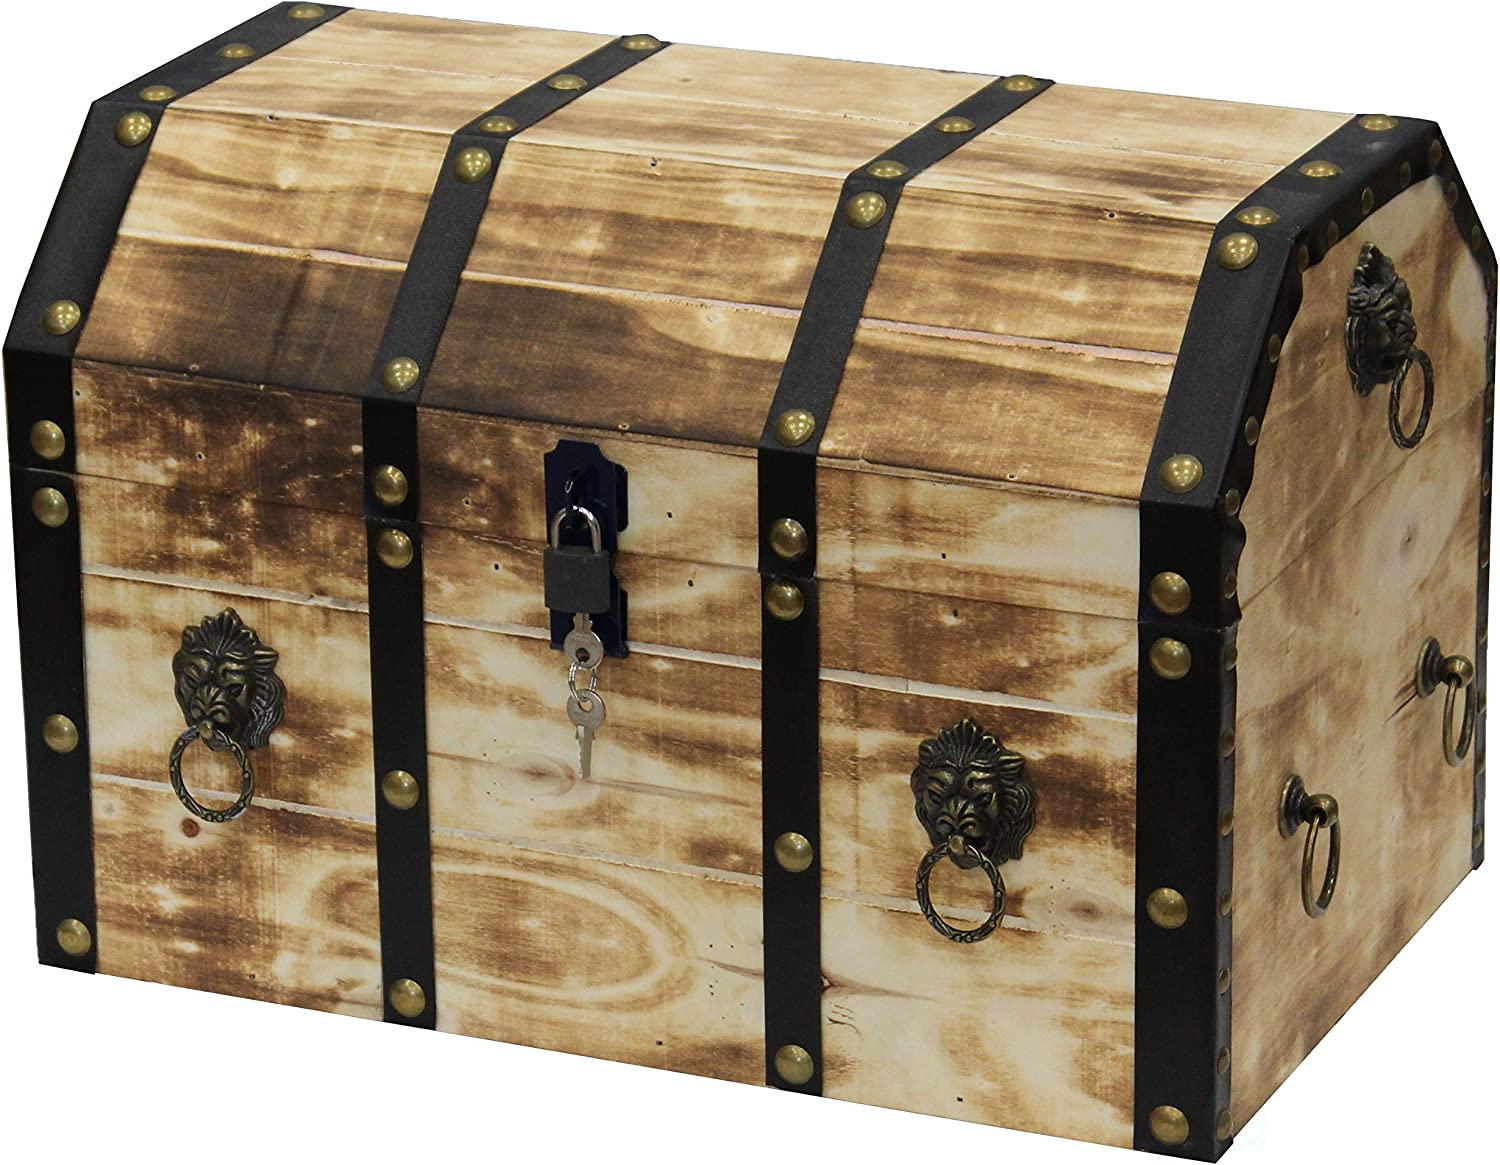 Vintiquewise QI003319L Large Wooden Decorative Lion Rings Pirate Trunk with Lockable Latch and Lock, Natural